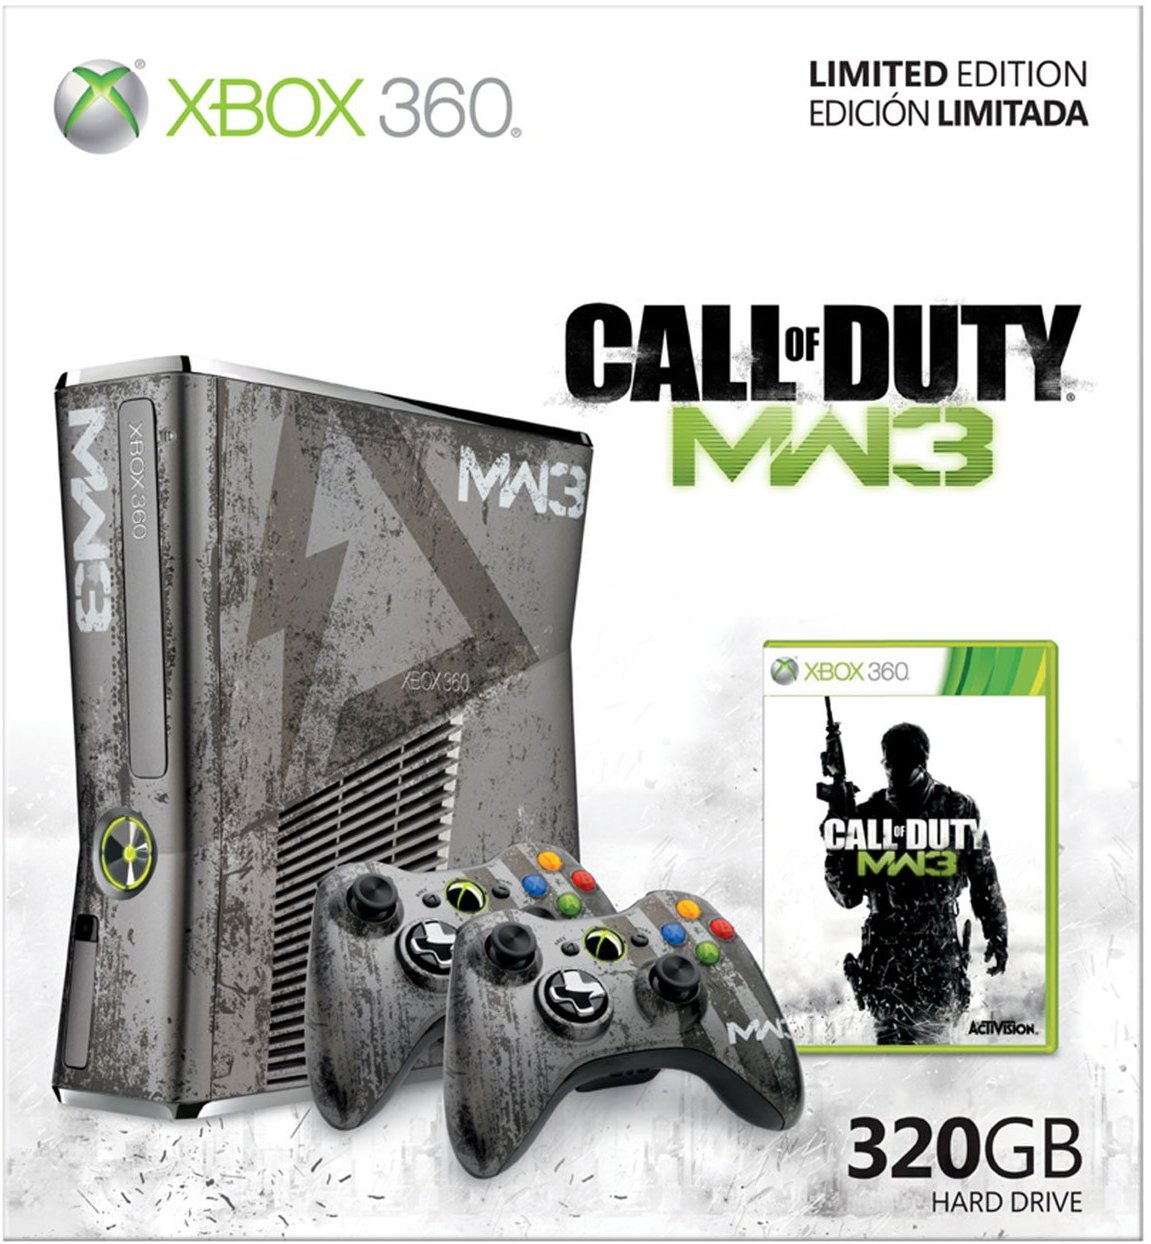 360: CONSOLE - SLIM - MODERN WARFARE 3 EDITION - INCL: 1 MW3 CTRL; HOOKUPS; 320GB HDD; MW3 GAME AND GUIDE (USED)